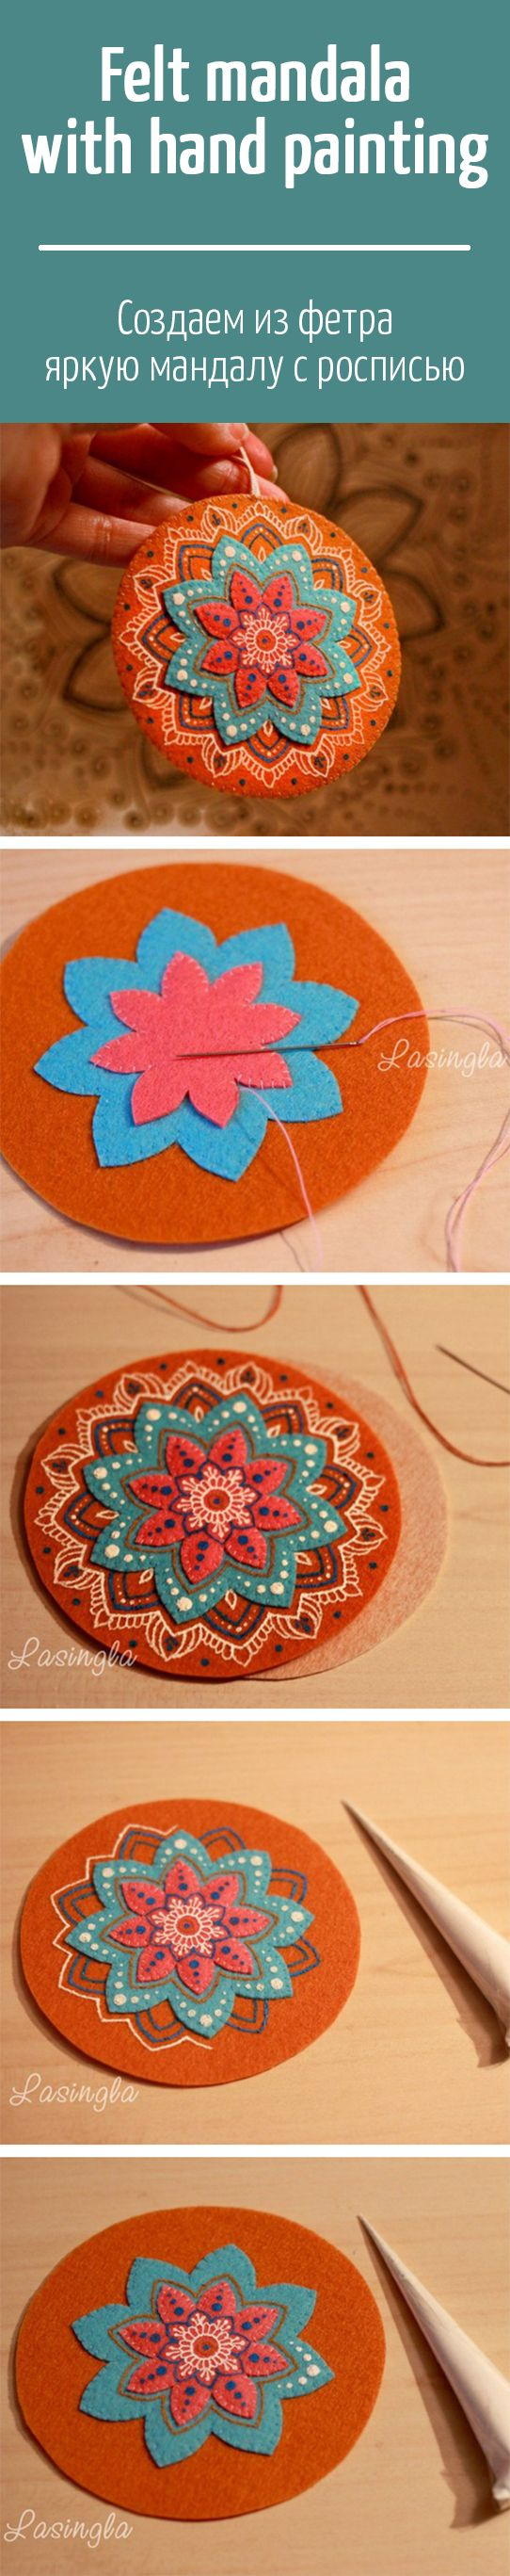 Felt mandala with hand painting: pattern and tutorial / Создаем яркую мандалу из…